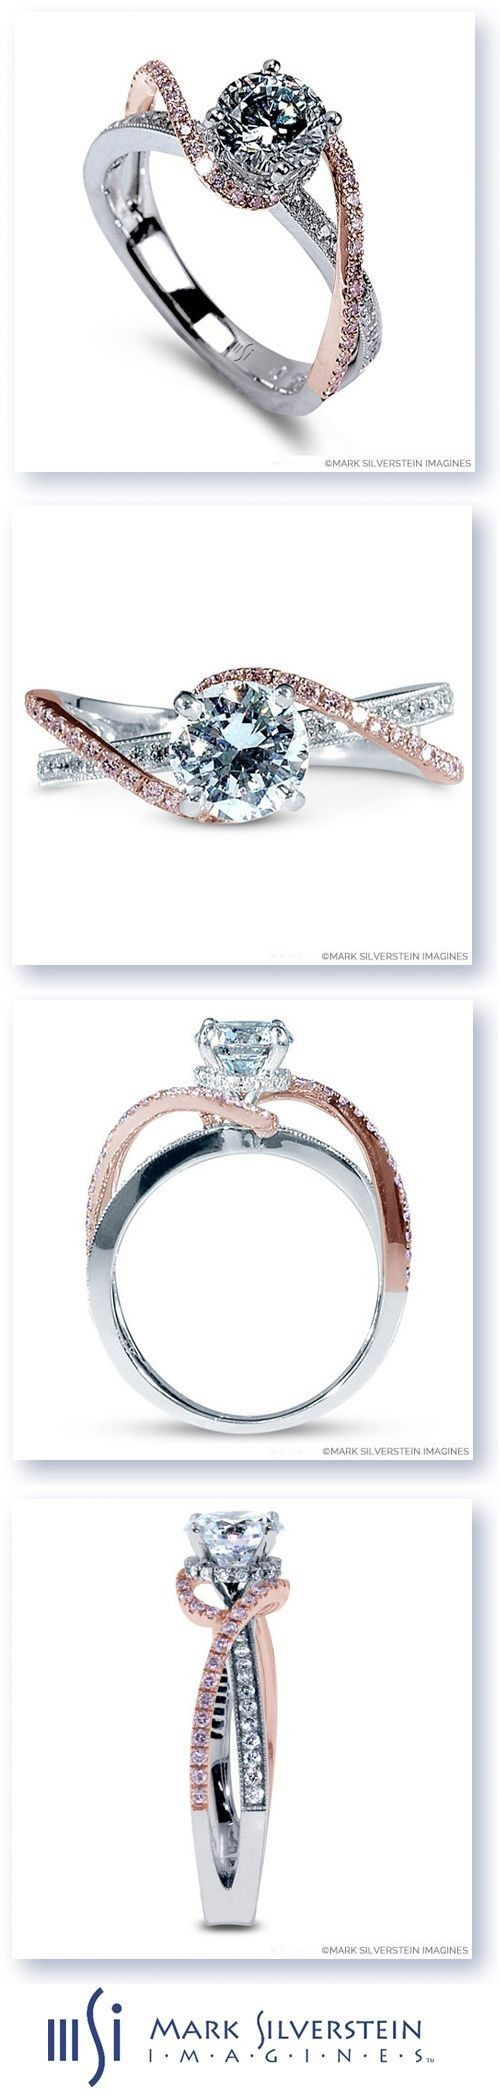 Oh my wow!!! So pretty! Not my usual style since I've always preferred vintage looking jewelry, but this is stunning!